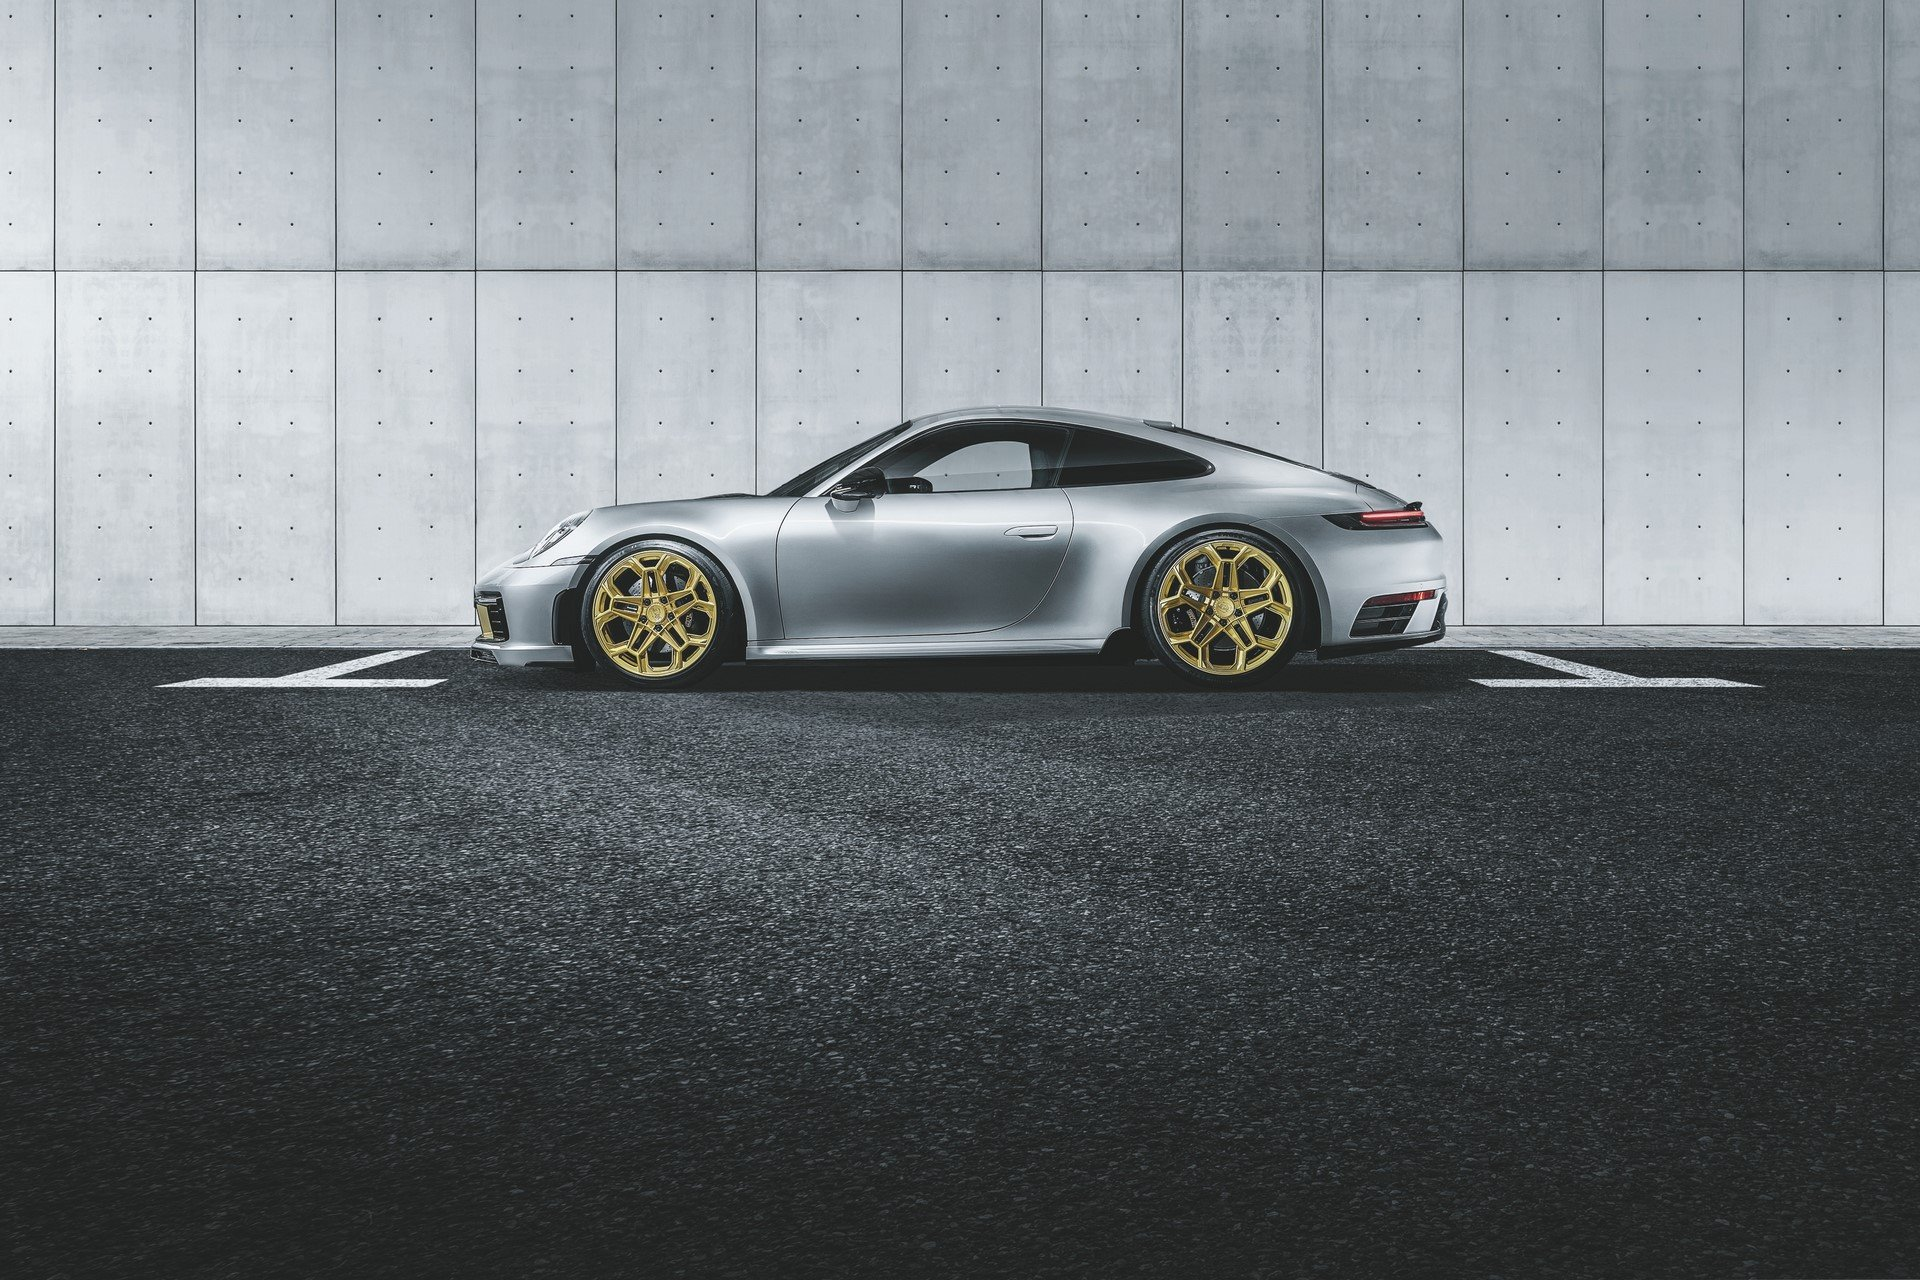 Porsche-911-Carrera-4S-by-TechArt-14